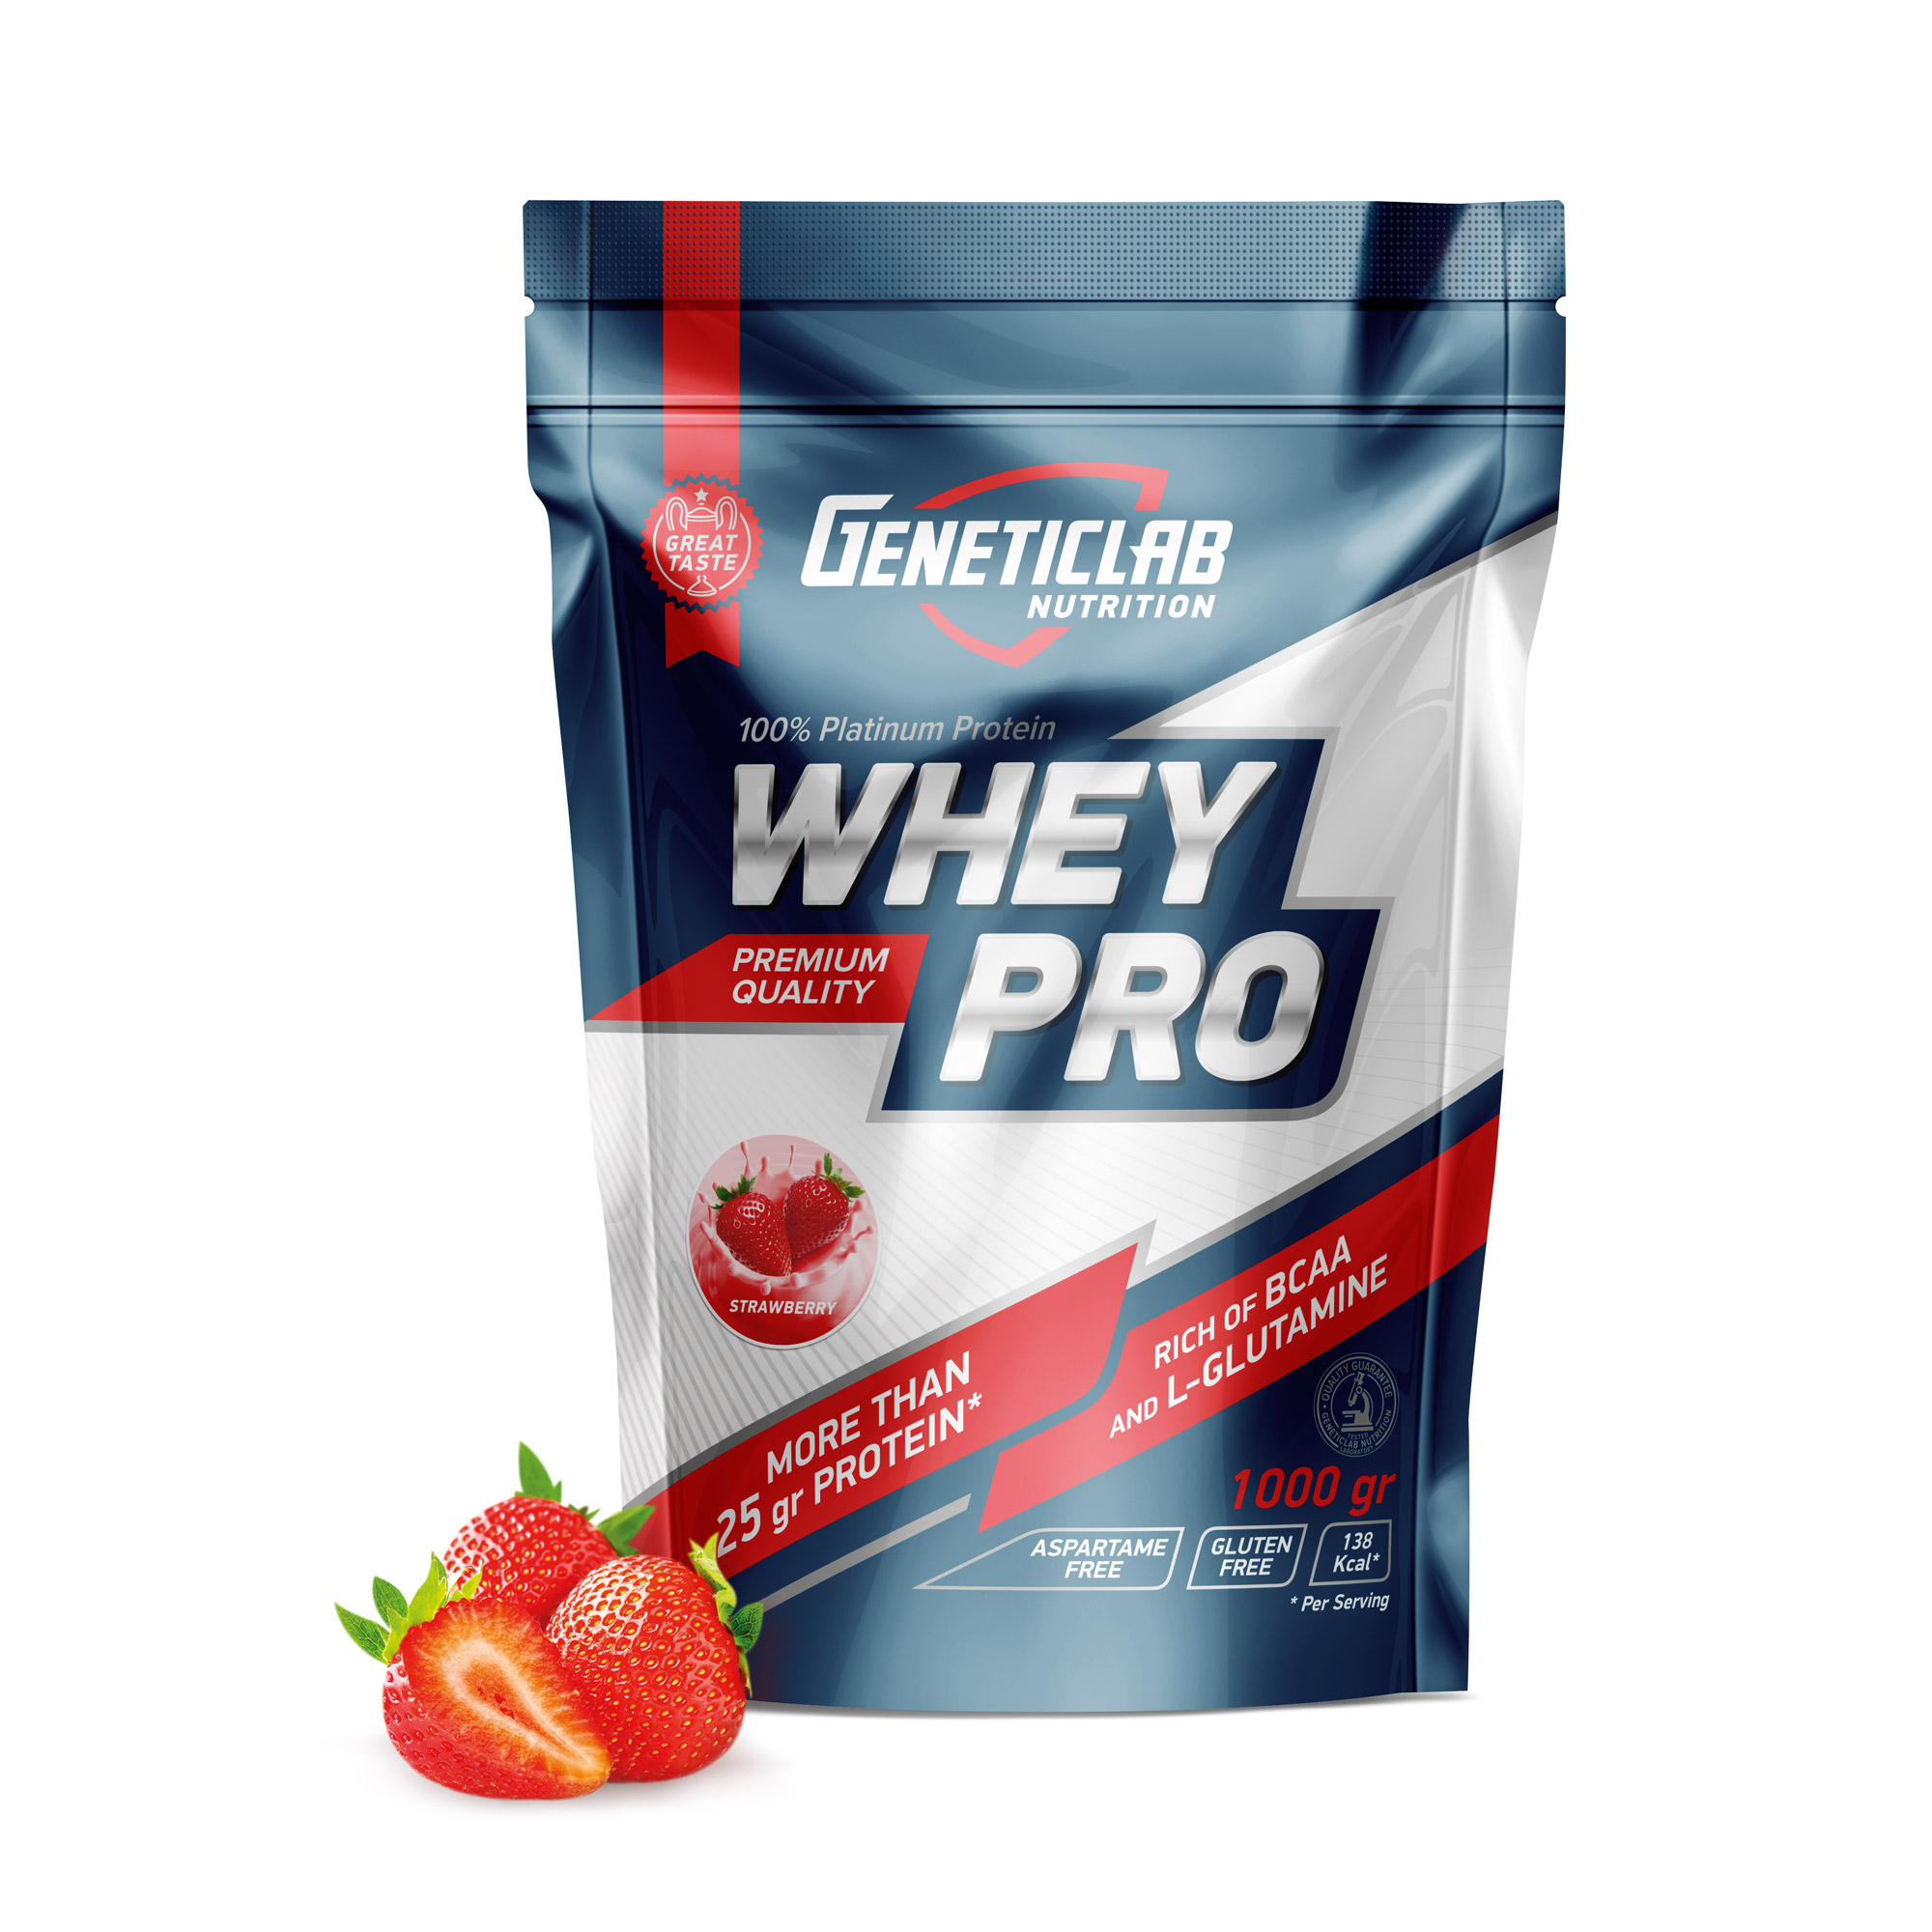 Whey Pro (Genetic Lab)